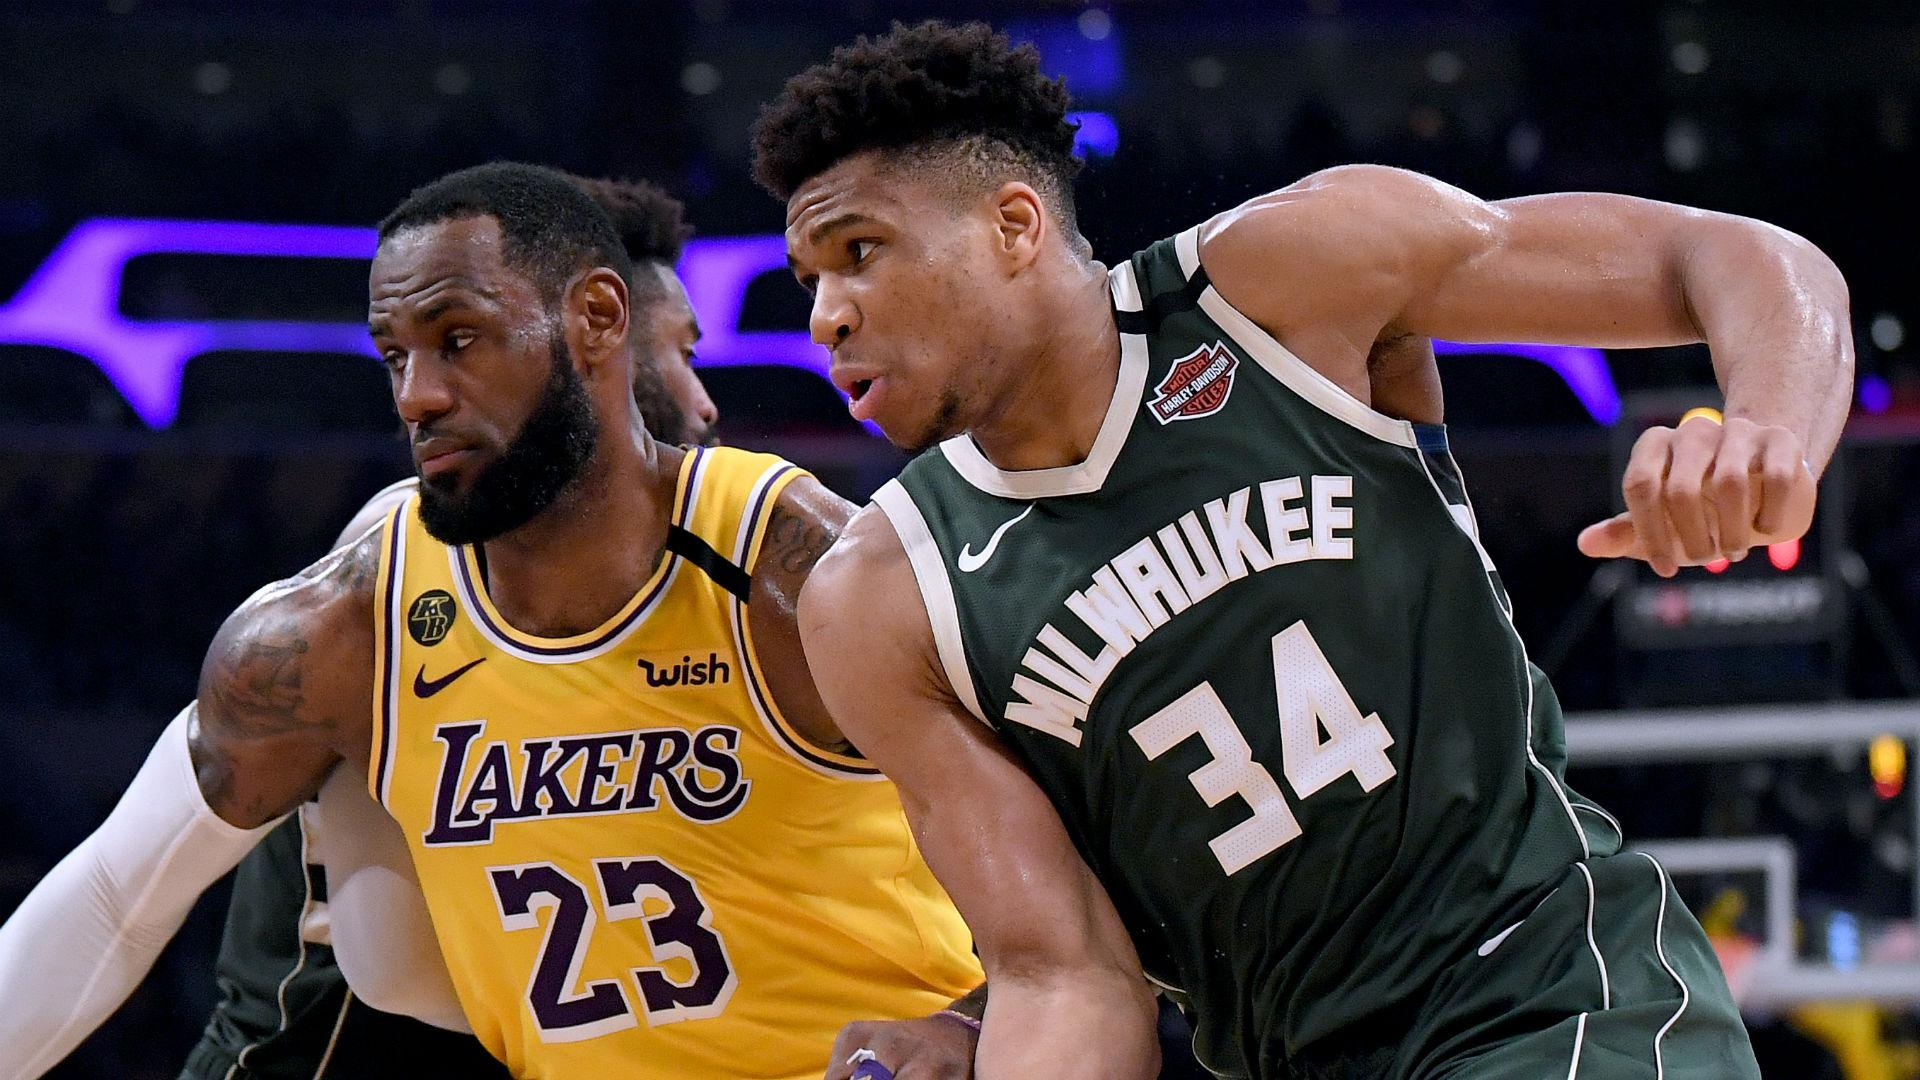 Nba Playoff Predictions 2020 Why The Lakers Are Unlikely To Win Nba Finals According To One Model